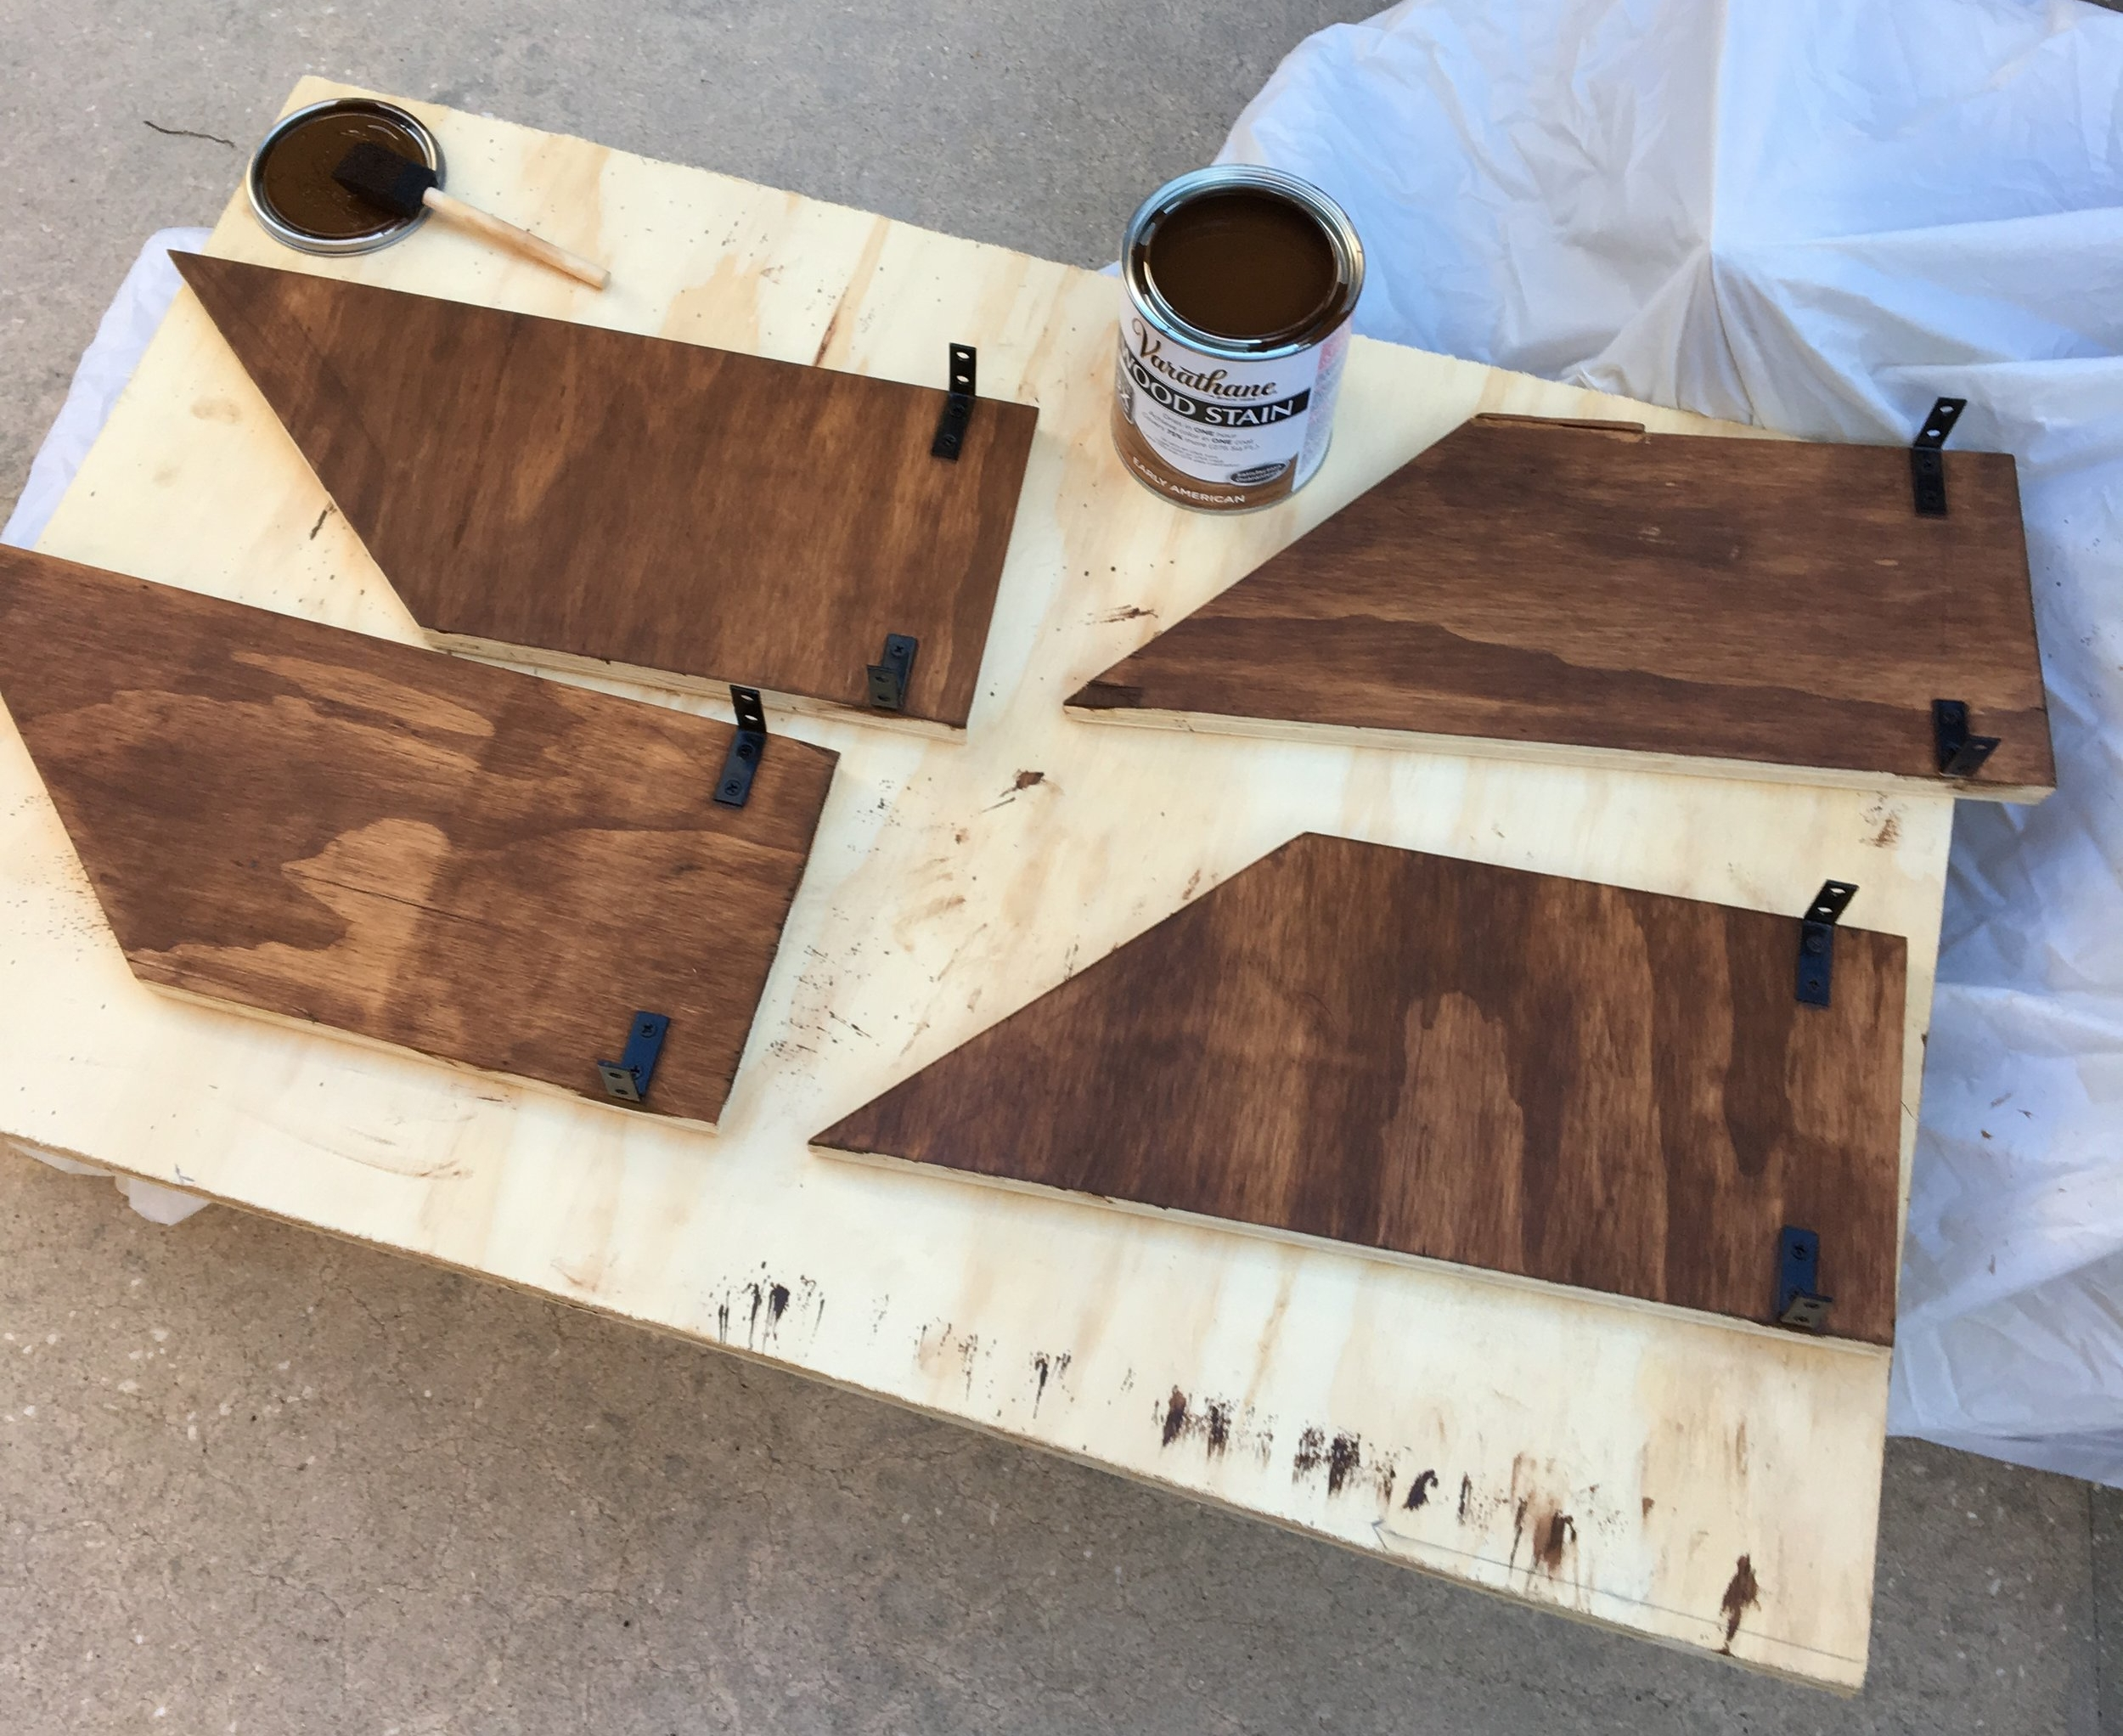 Staining process.